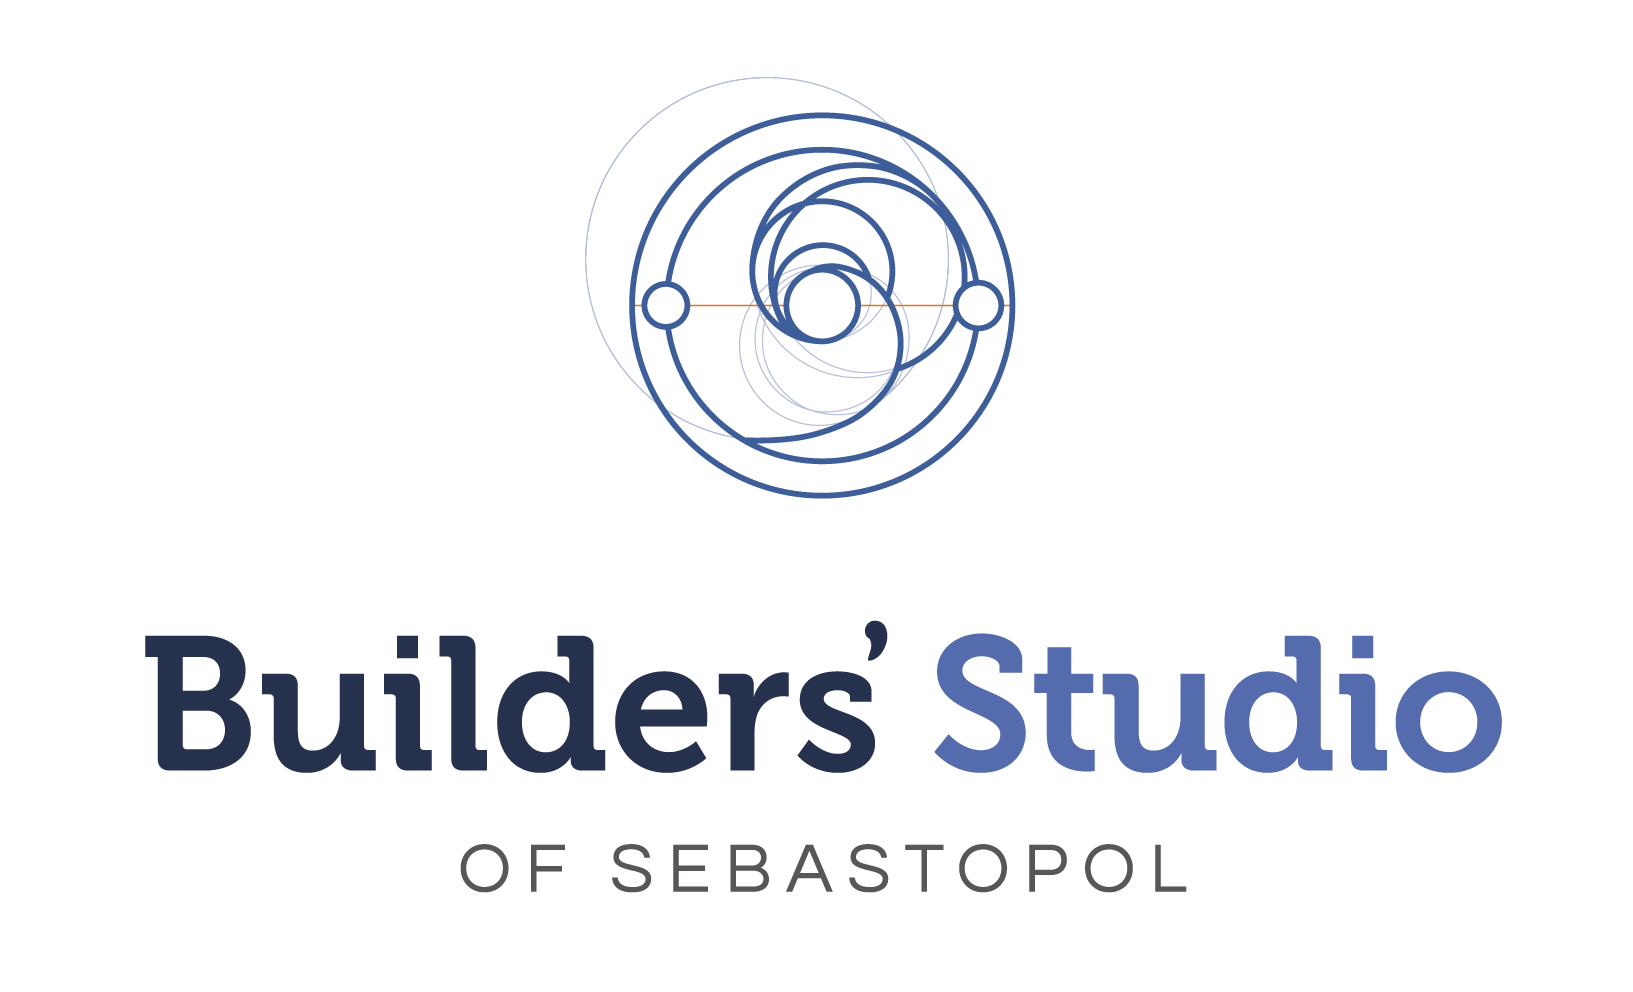 Builders' Studio of Sebastopol